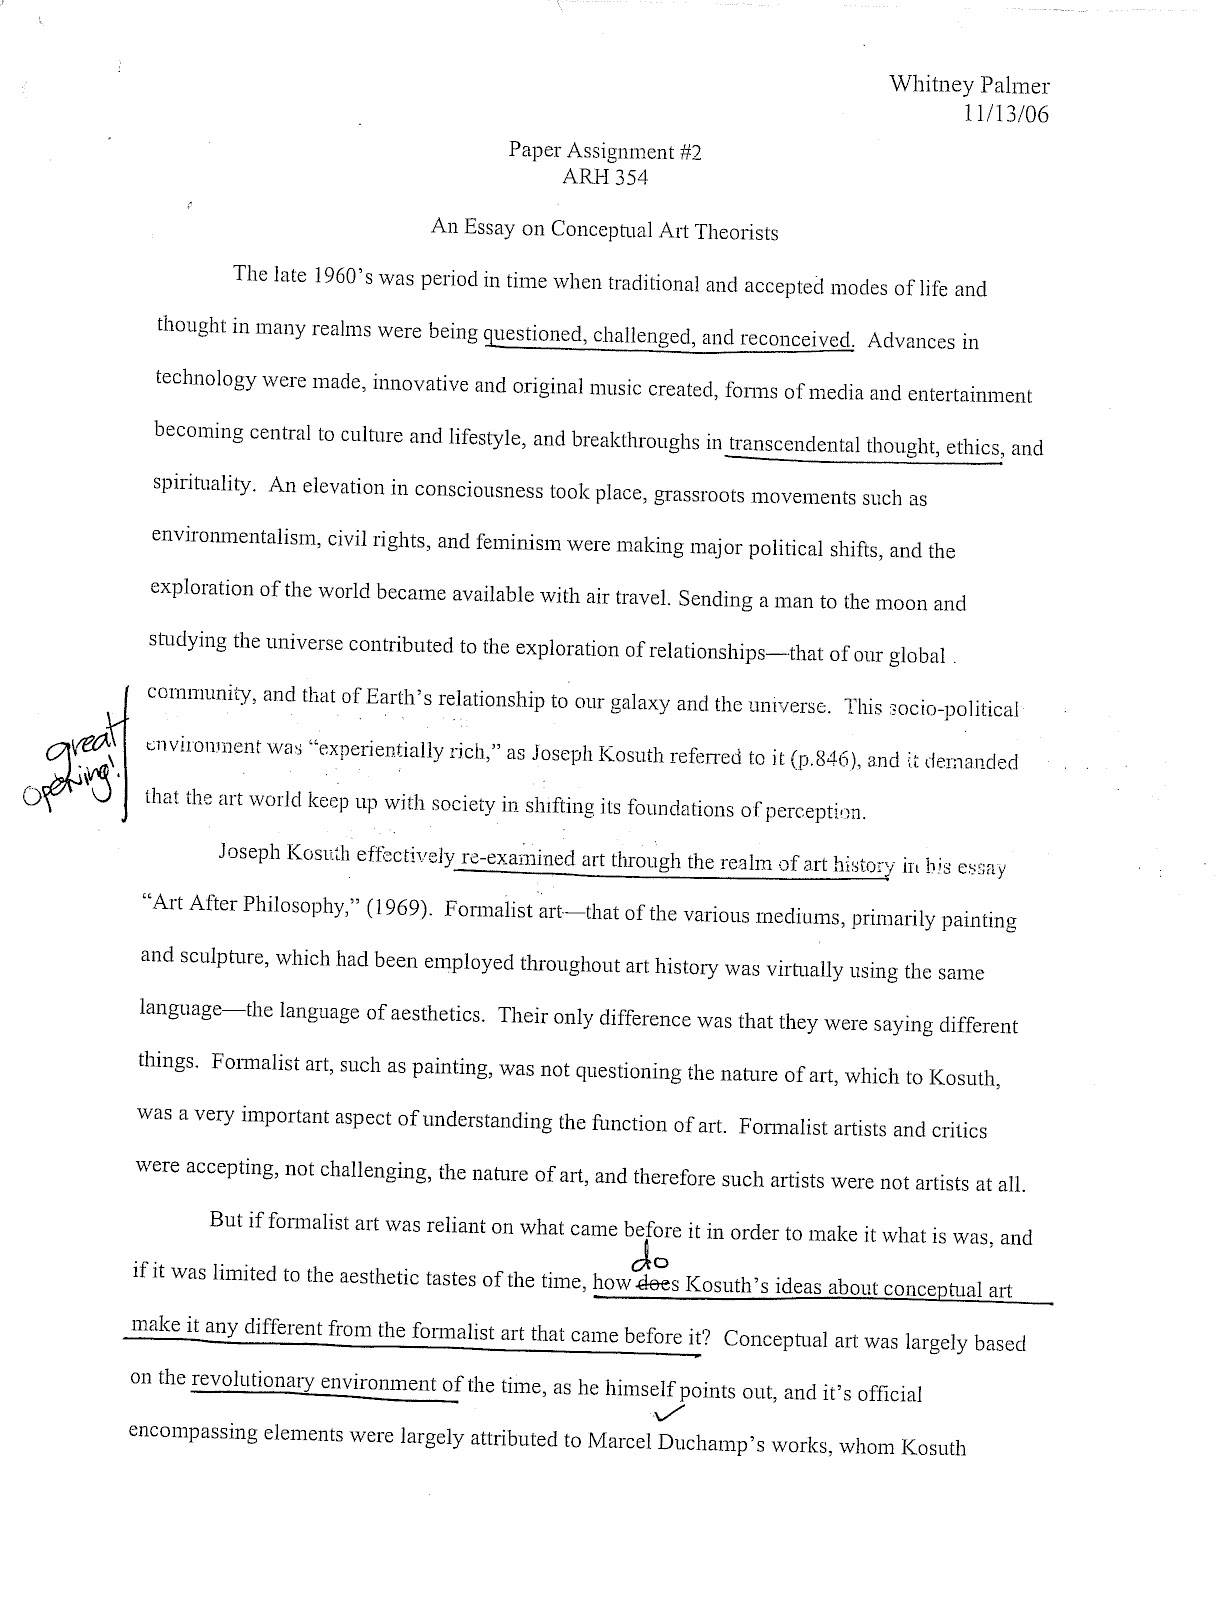 essay art how to write art history essay essay on art art history  art history essays art history essays compucenter the aim of this essay from art history fall